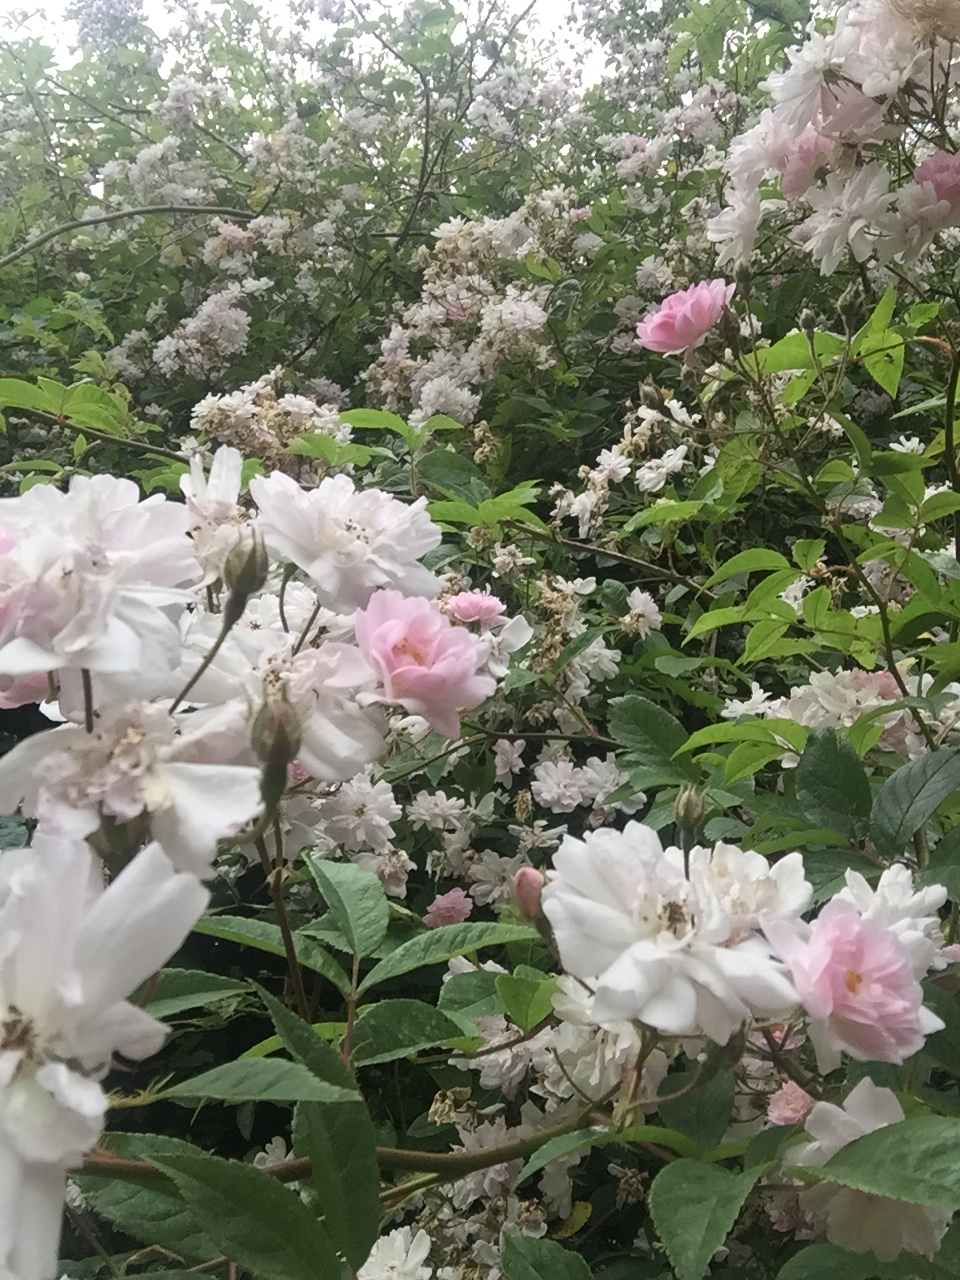 Paul's Himalayan Musk - A rose that loves climbing and easy to grow. Just point it at a tree and off it goes.